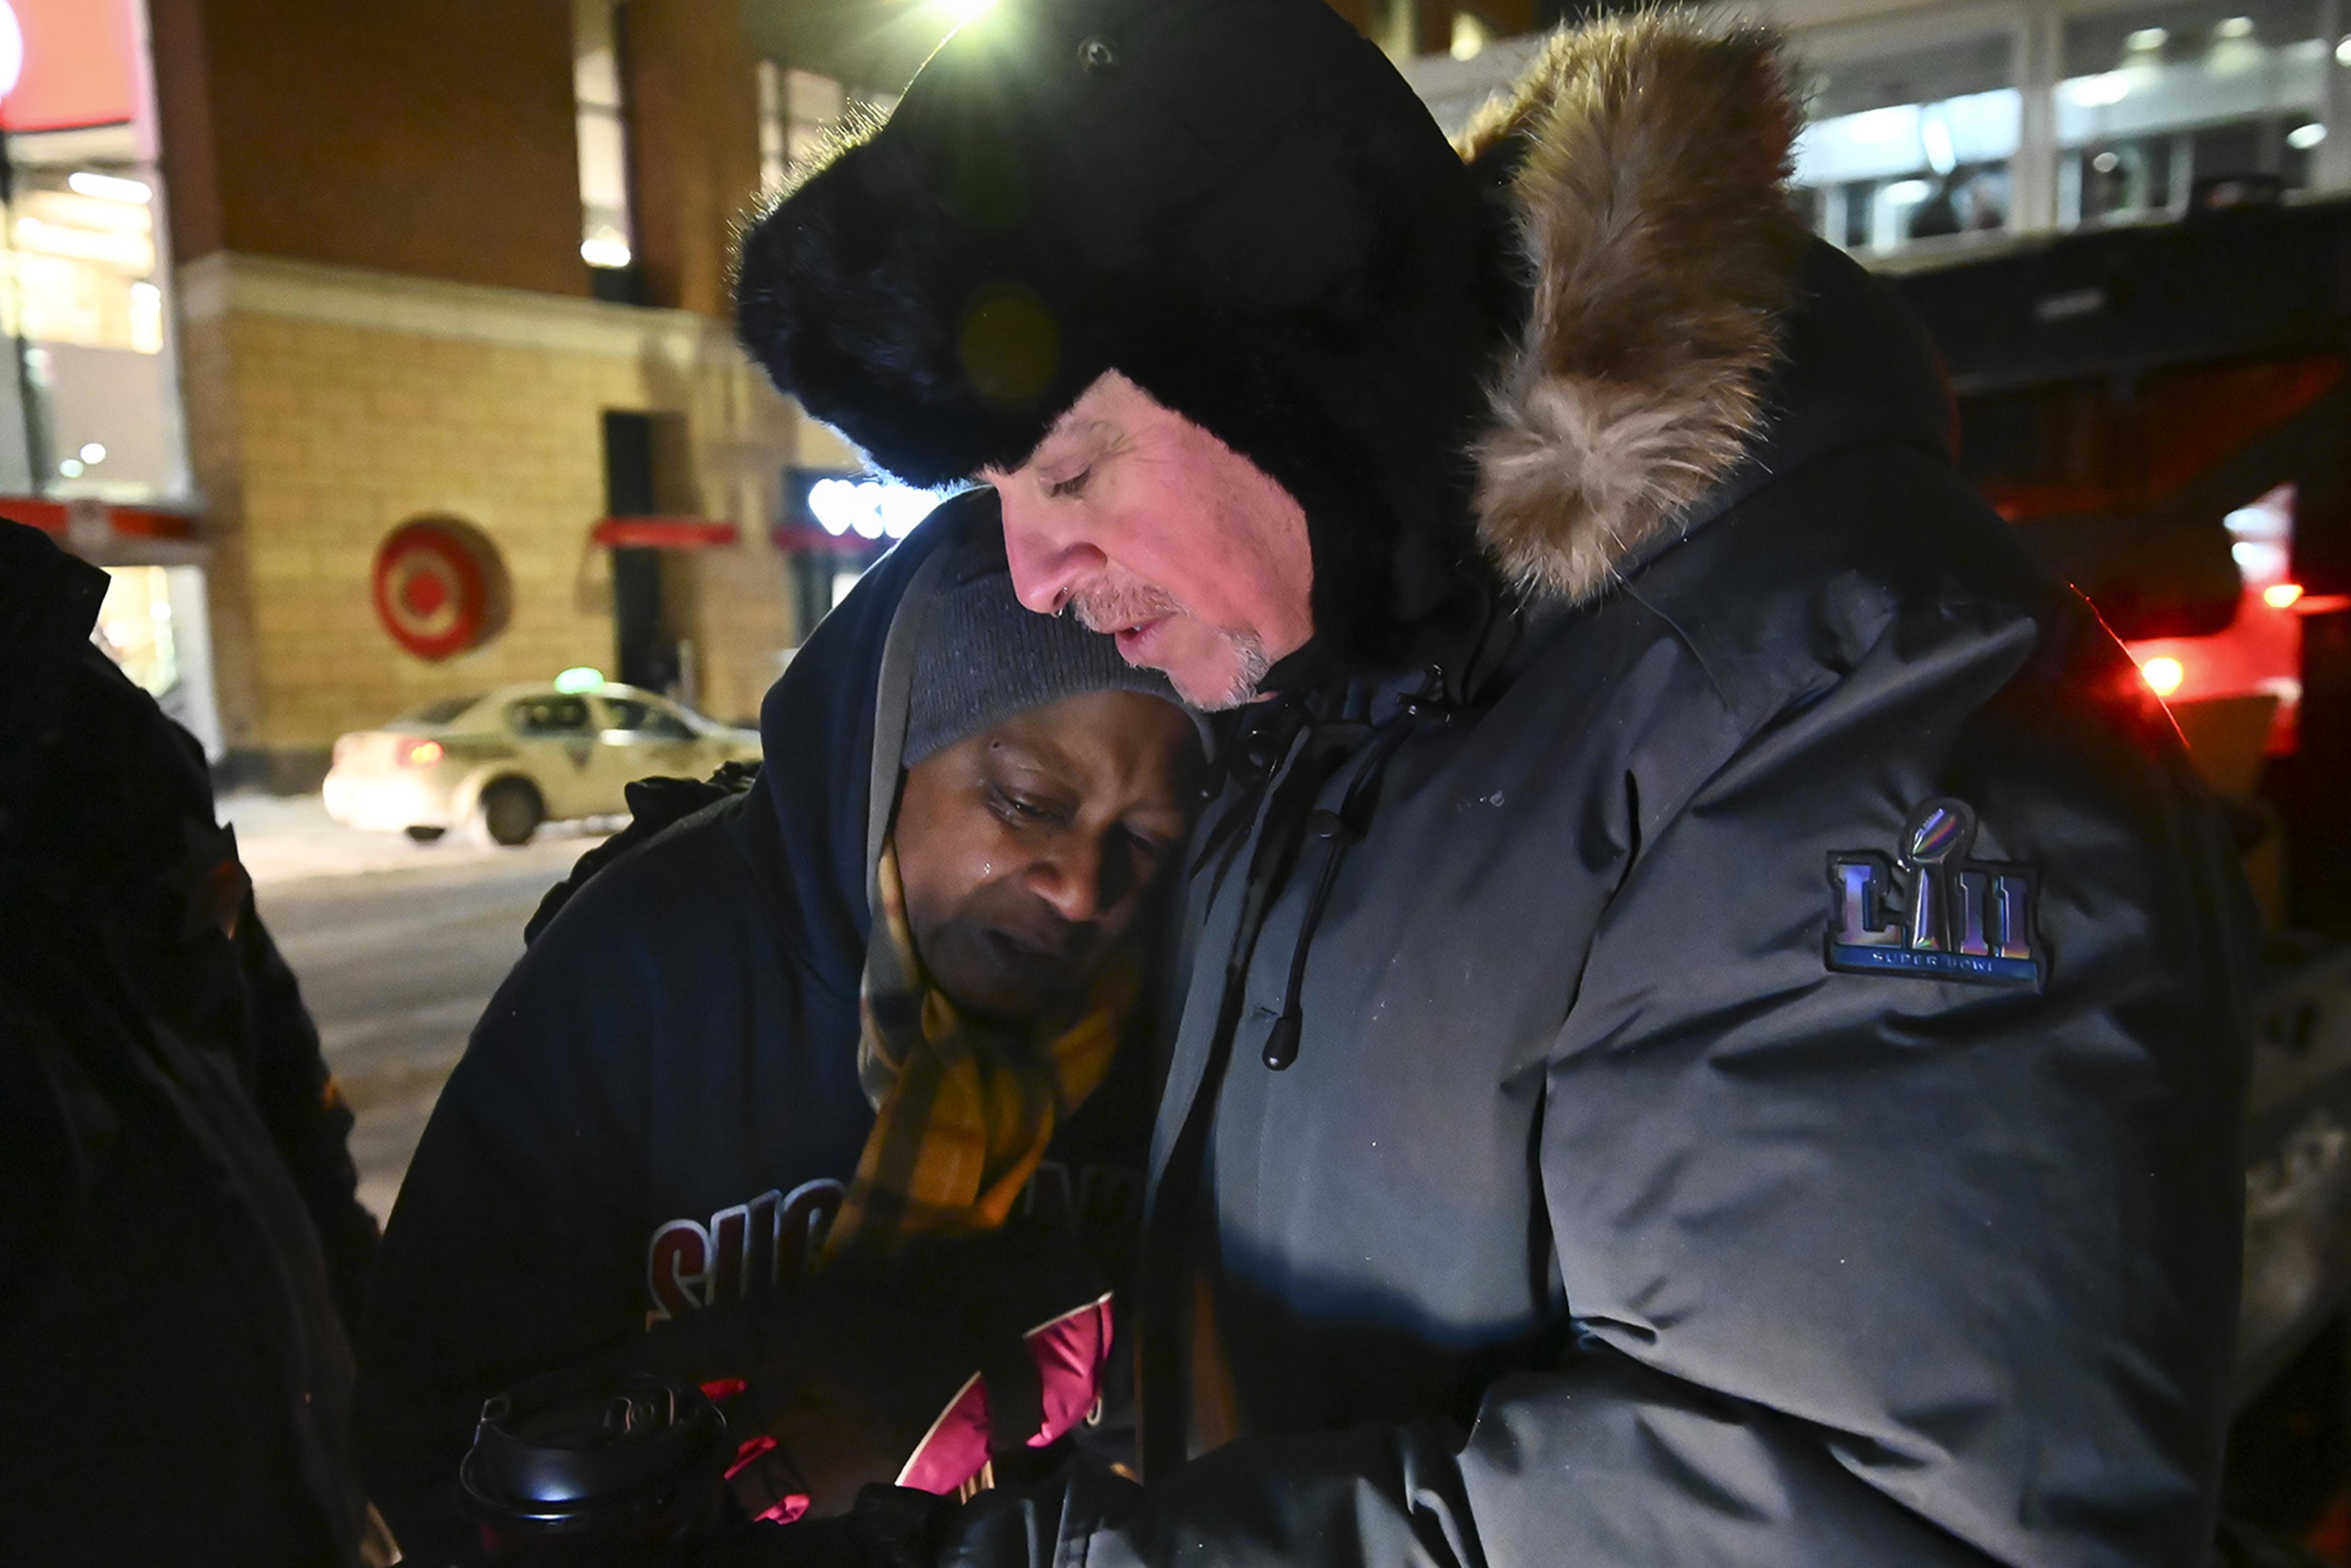 Pastor John Steger, with Grace In The City church, embraces Jearline Cyrus, a homeless woman, in downtown Minneapolis on Tuesday night, Jan. 29, 2019 while delivering cold-weather gear, hot chocolate and food with Minneapolis Police Sgt. Grant Snyder. (Aaron Lavinsky/Minneapolis Star Tribune/TNS)